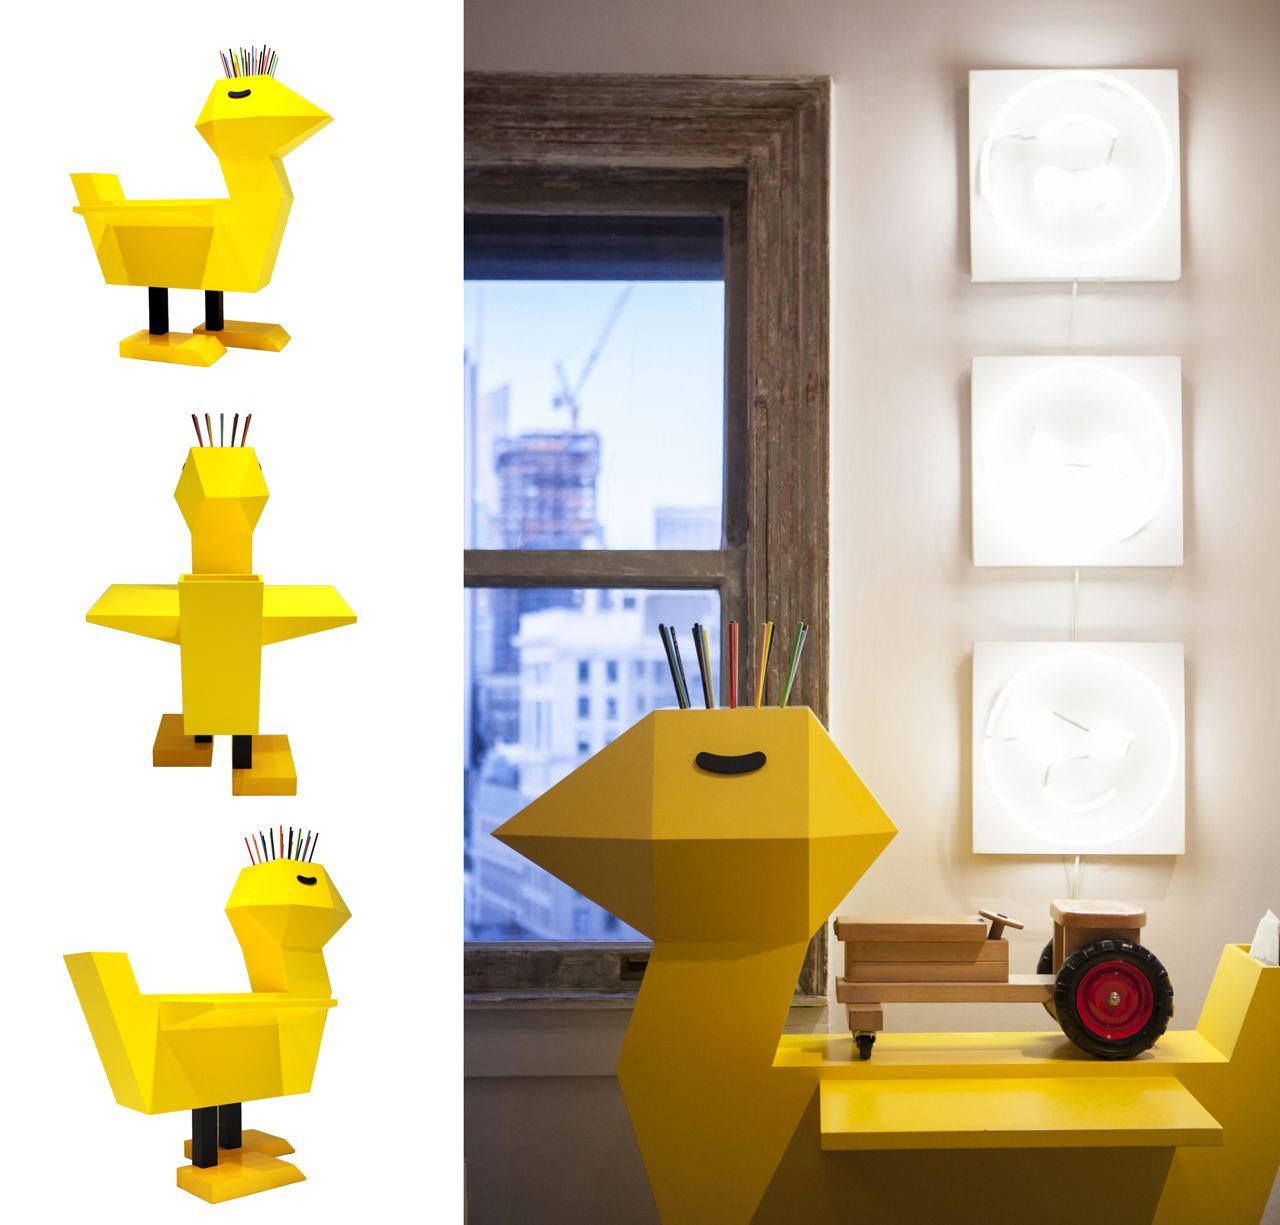 Chicken Desk by Kinder Modern, design Guillaumit